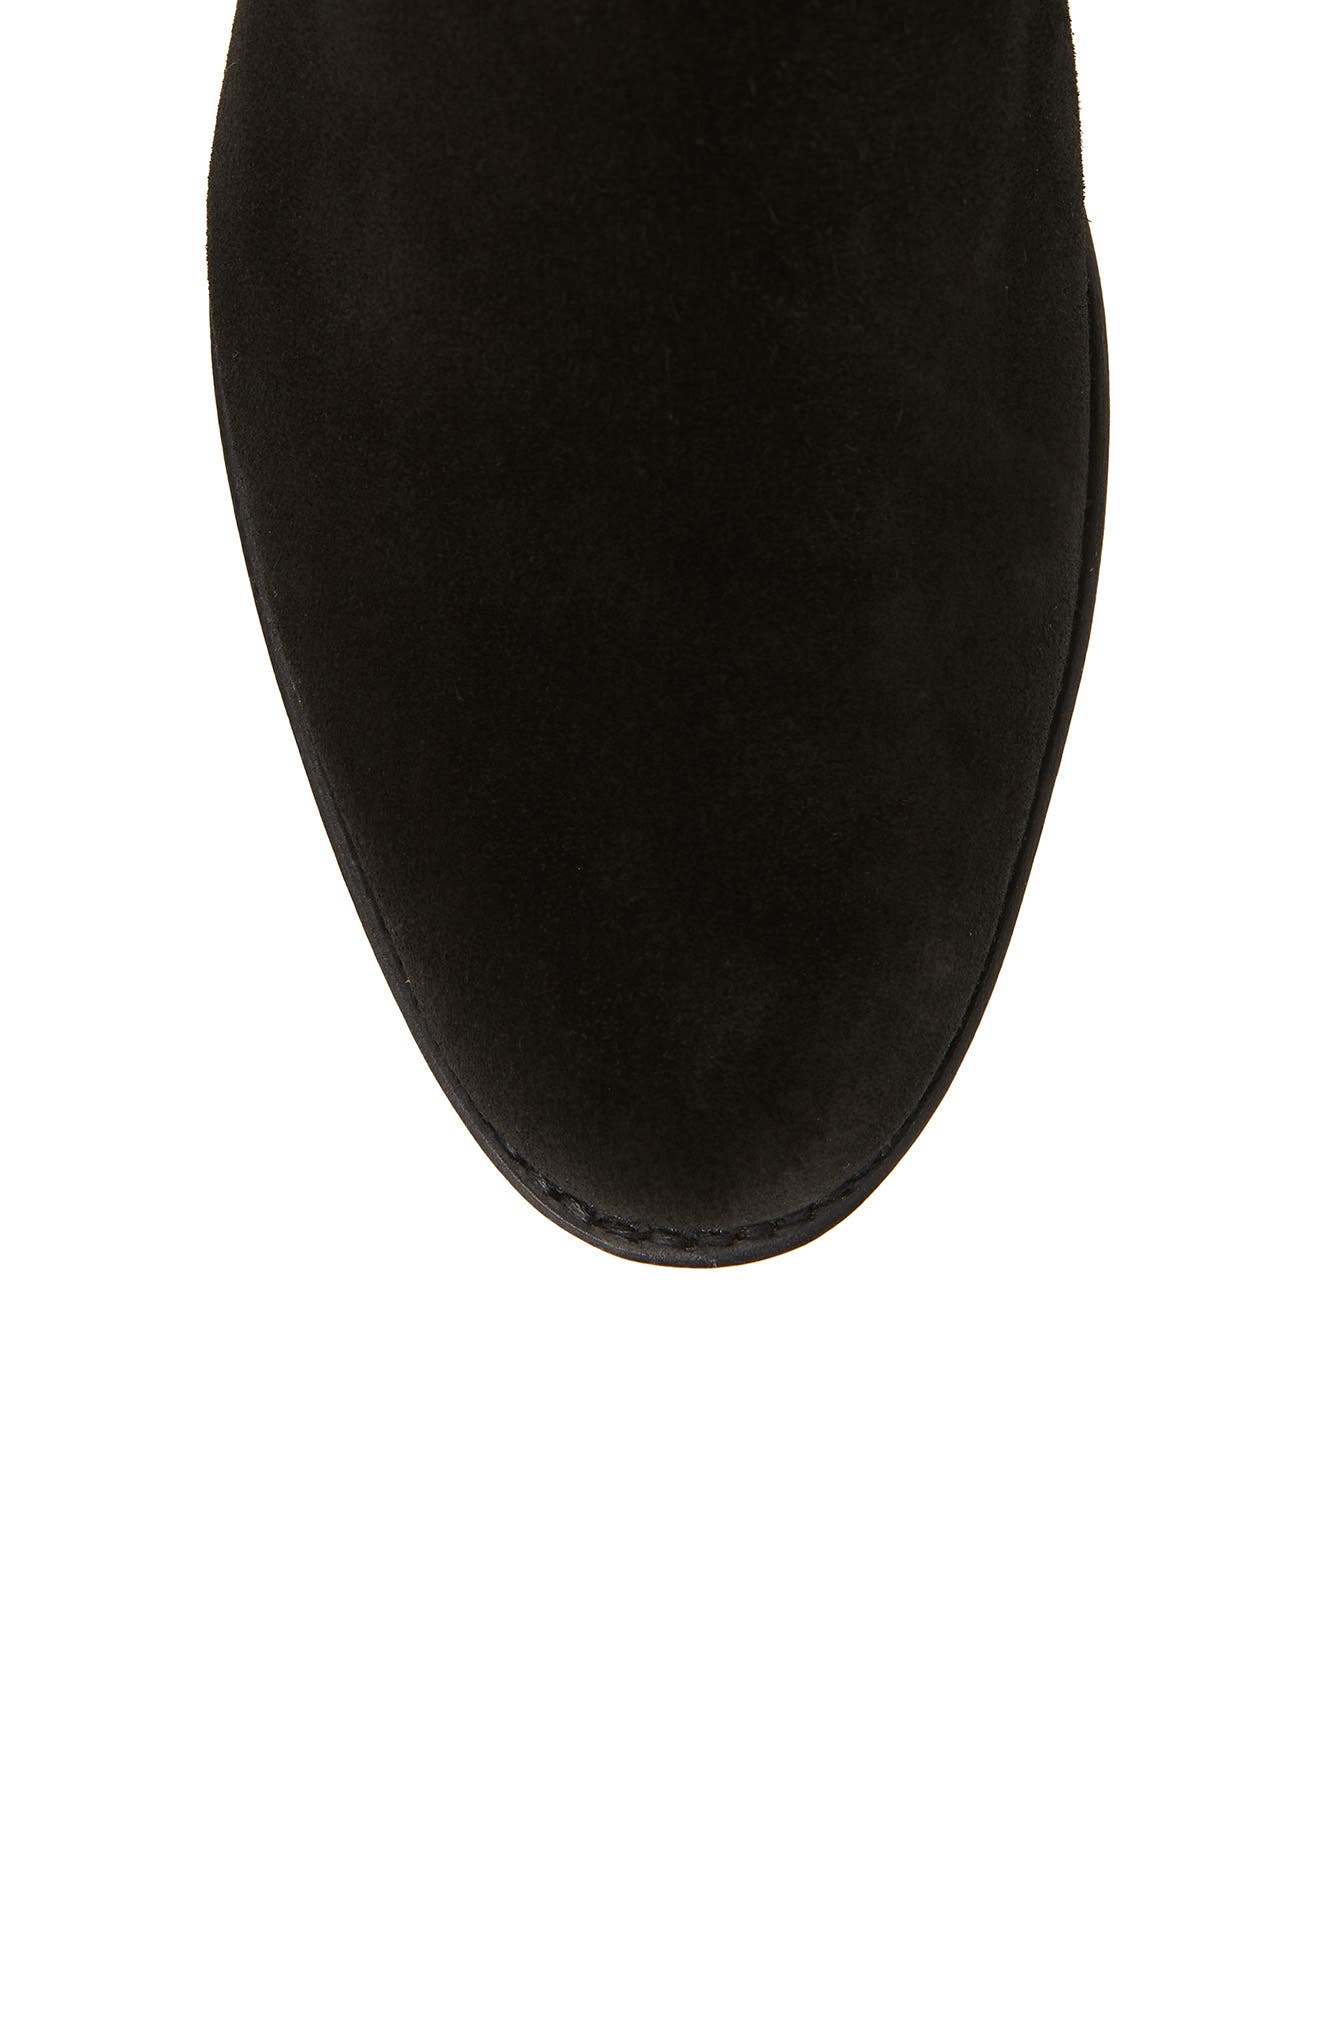 Two24 by Ariat Barcelona Boot,                             Alternate thumbnail 5, color,                             BLACK SUEDE